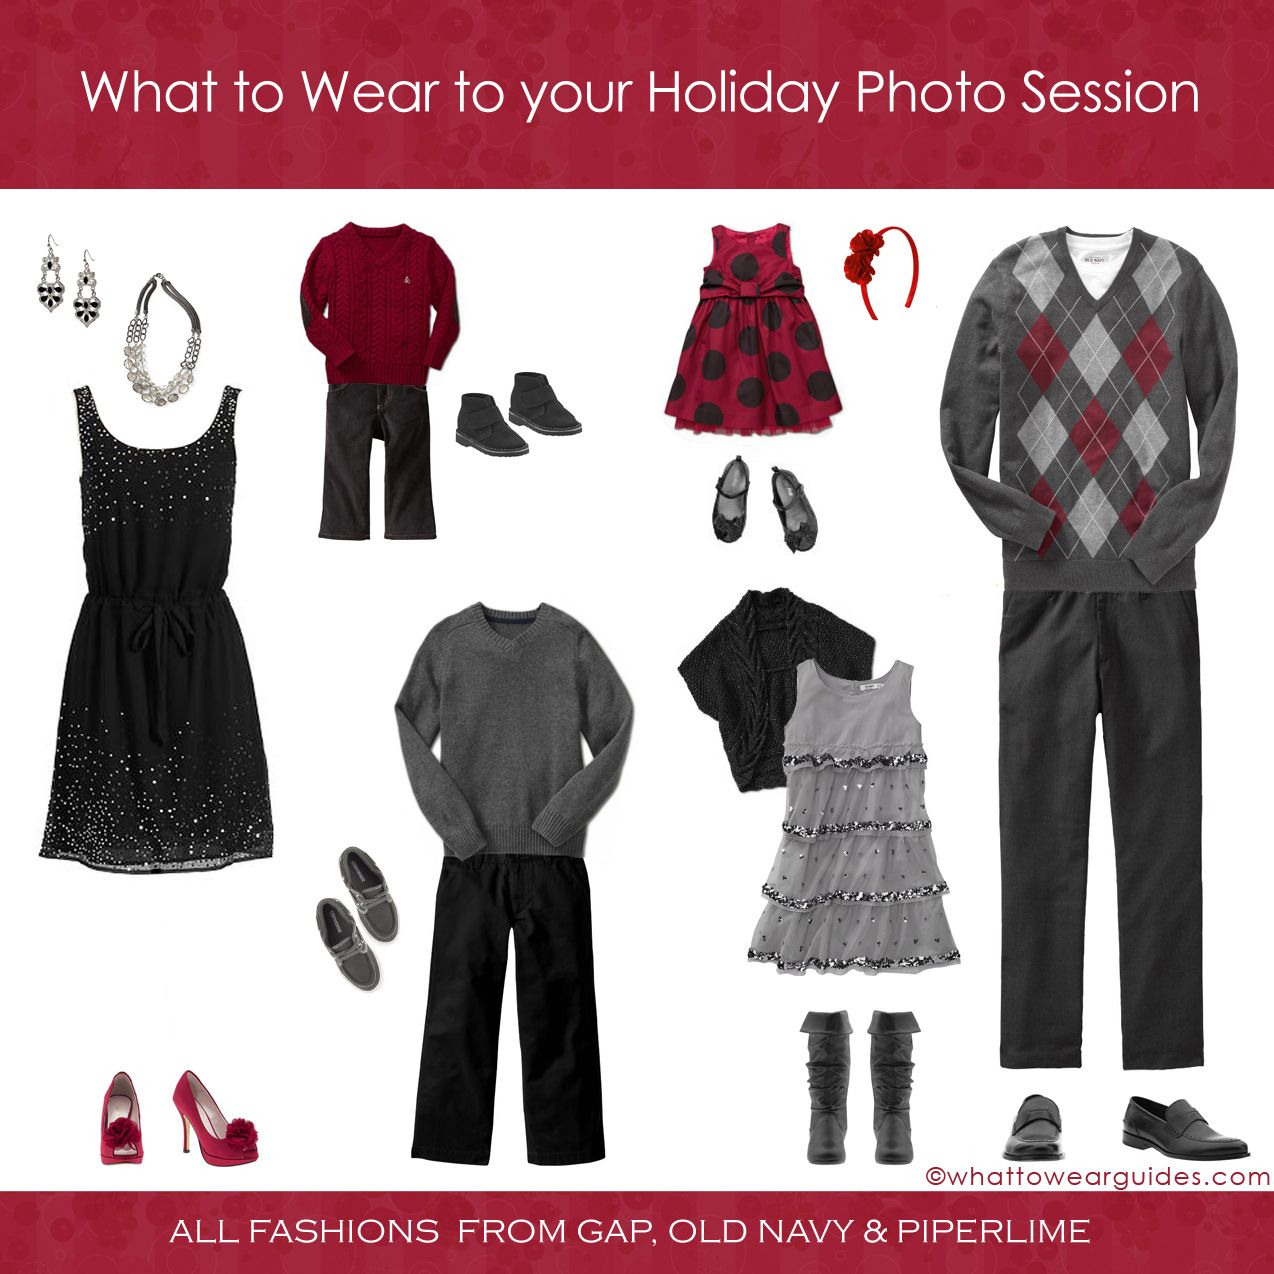 What To Wear For A Family Christmas Photo ShootGreat Flow Without That Matchy Vibe Use Prints And Textures Touches Of Colors Your